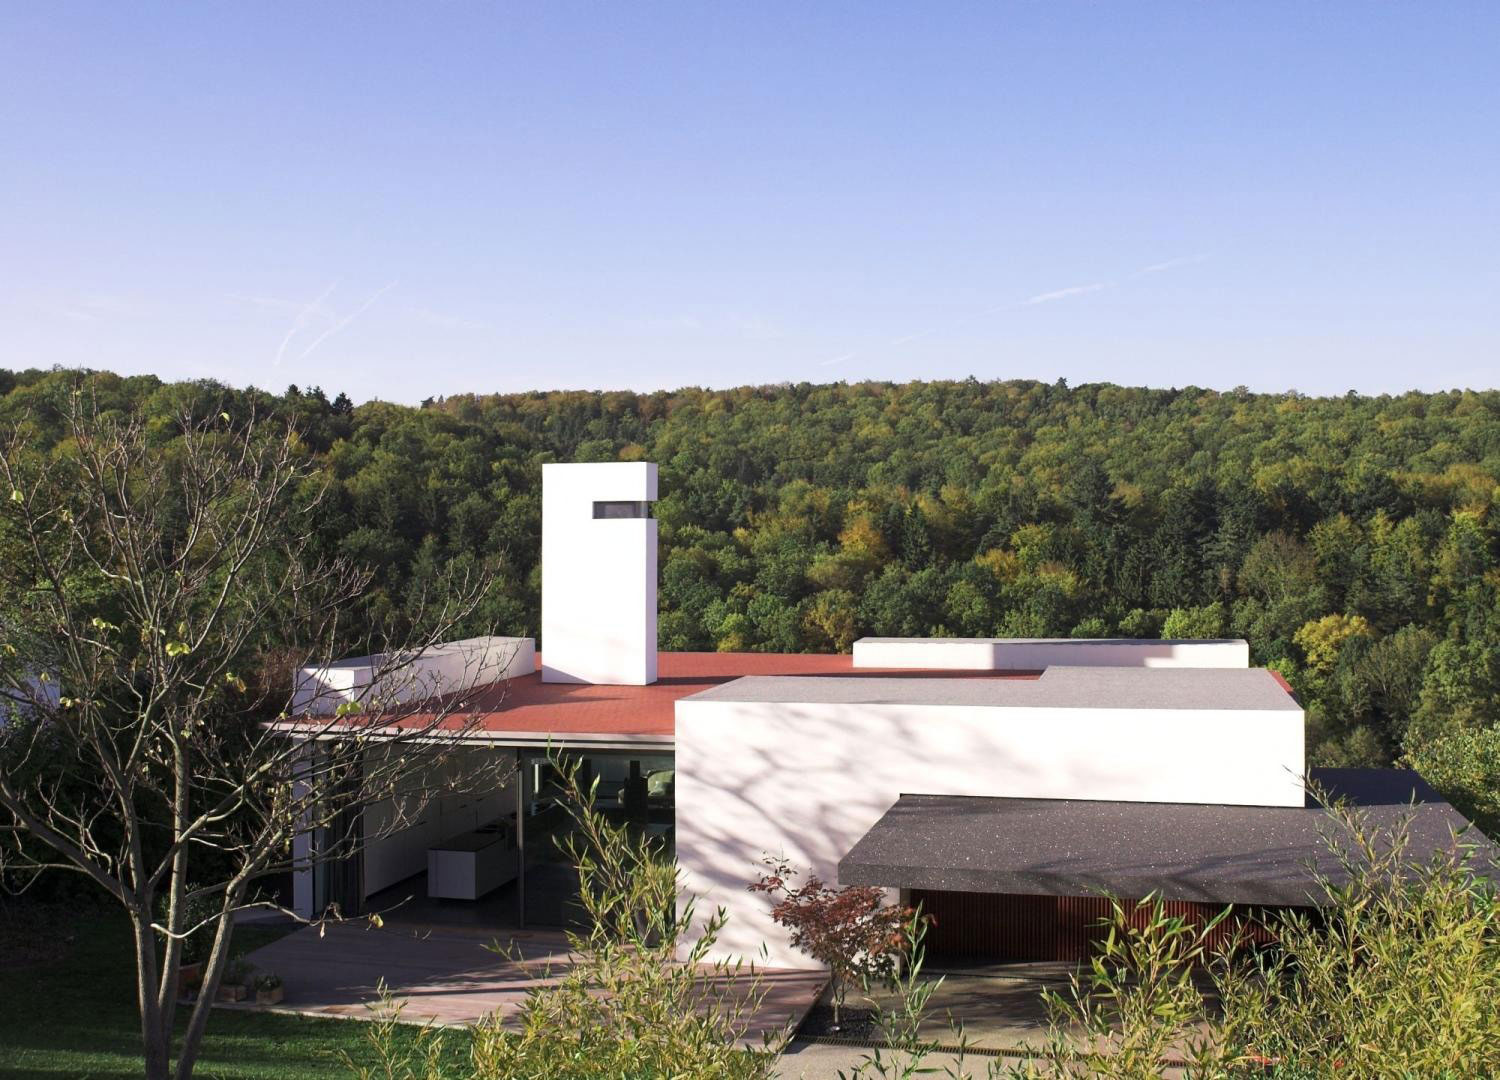 House B-Wald by Alexander Brenner (2)